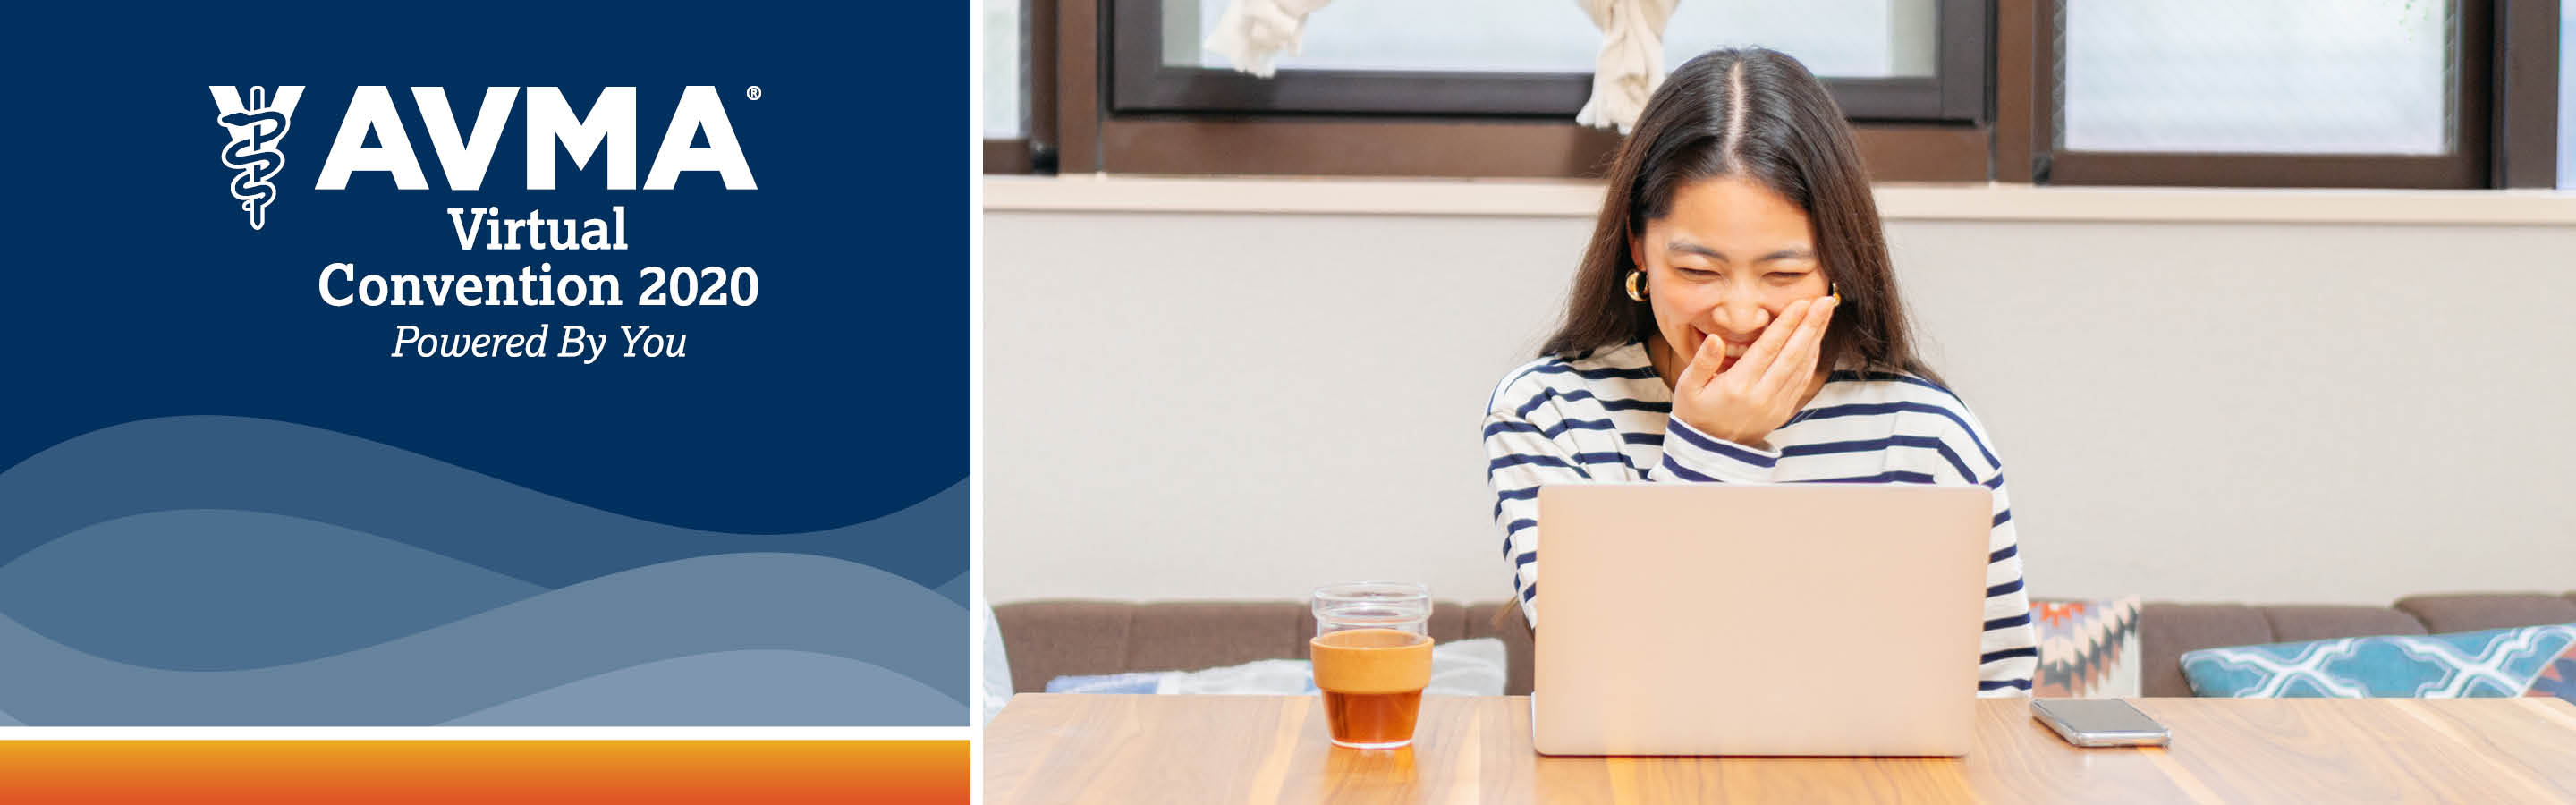 Woman laughing while looking at computer